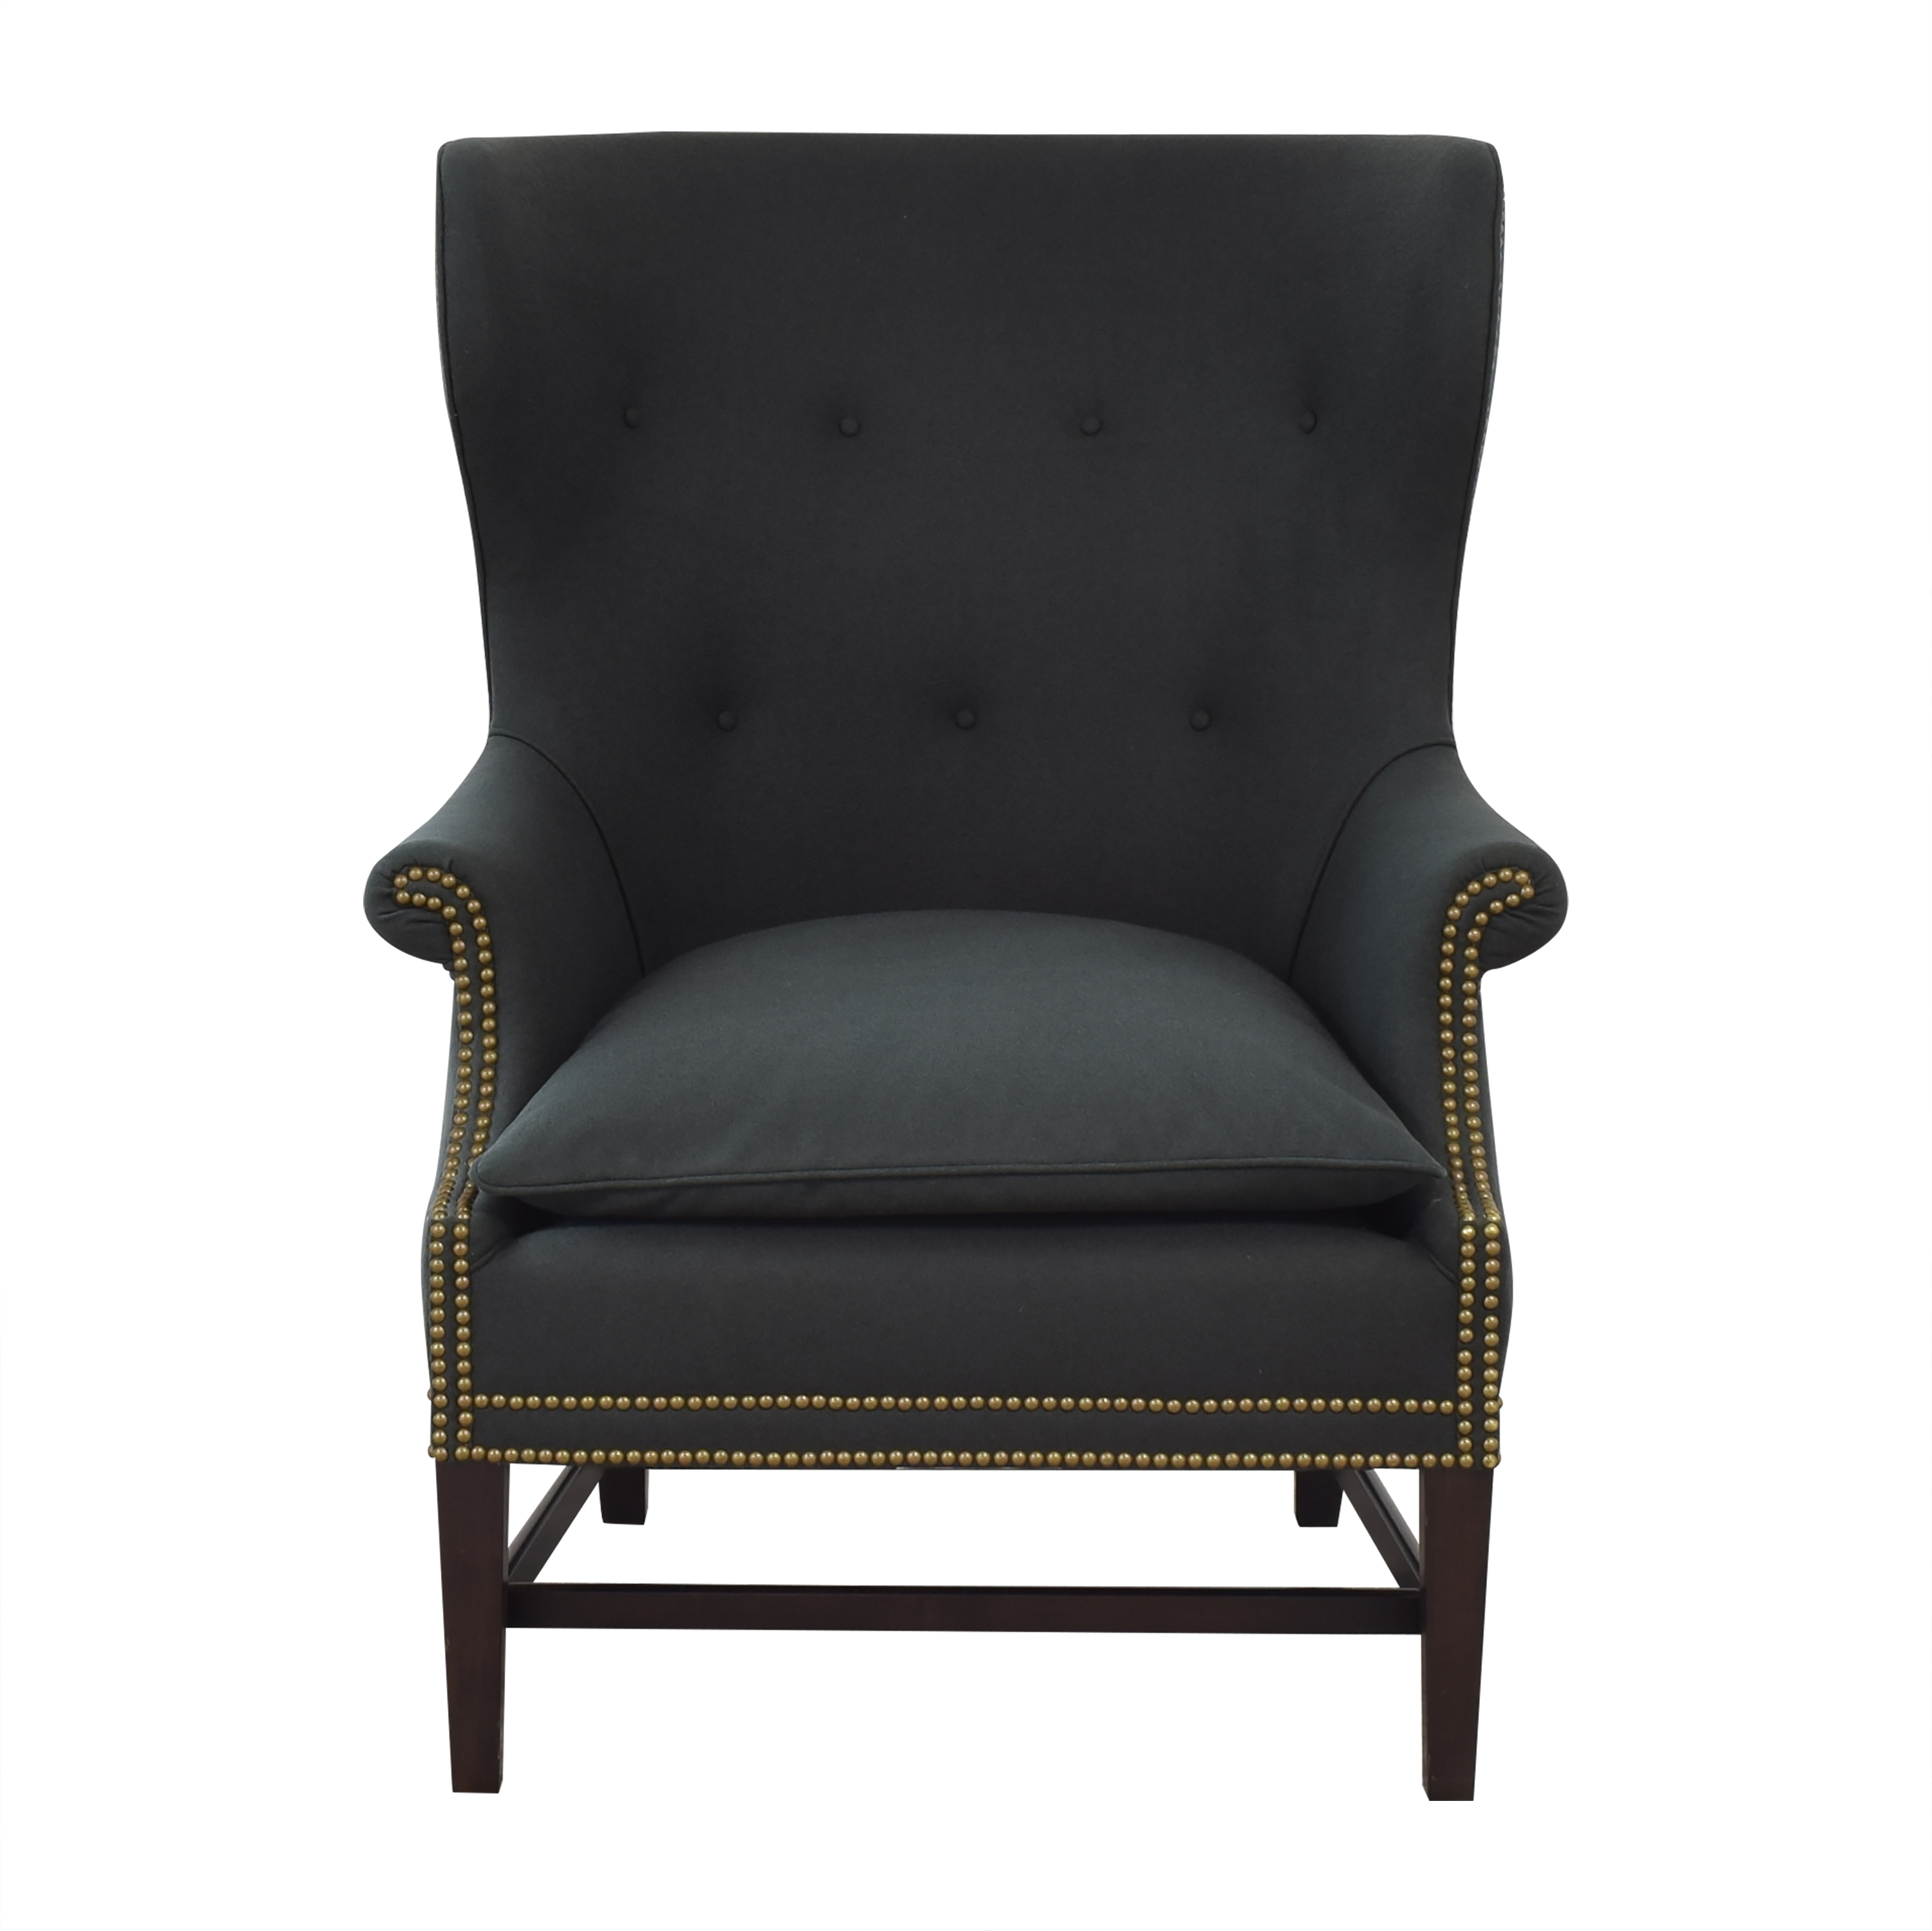 Victoria Hagan Collection James Wing Chair sale